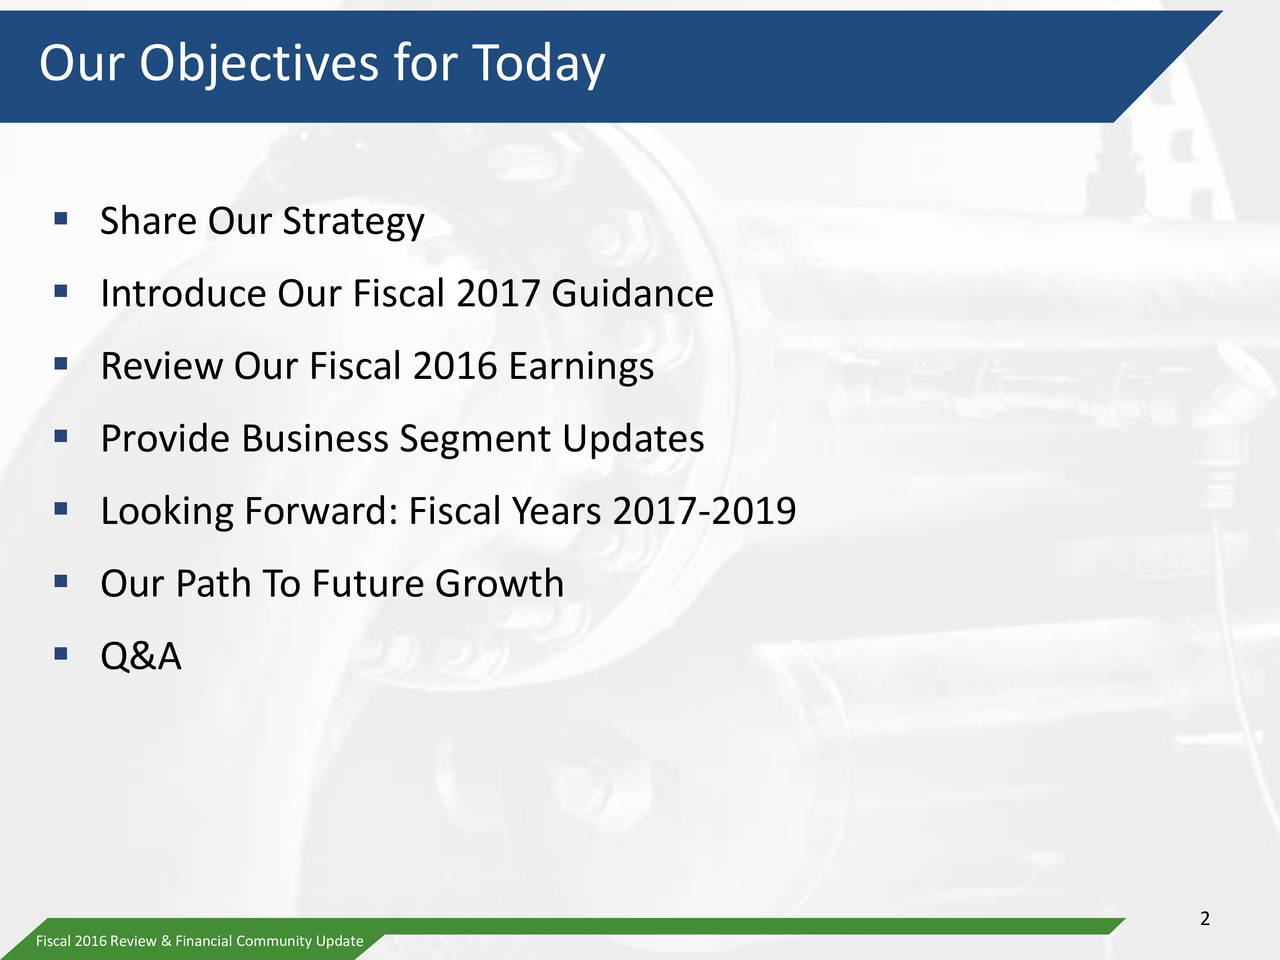 Share Our Strategy Introduce Our Fiscal 2017 Guidance Review Our Fiscal 2016 Earnings Provide Business Segment Updates Looking Forward: Fiscal Years 2017-2019 Our Path To Future Growth Q&A 2